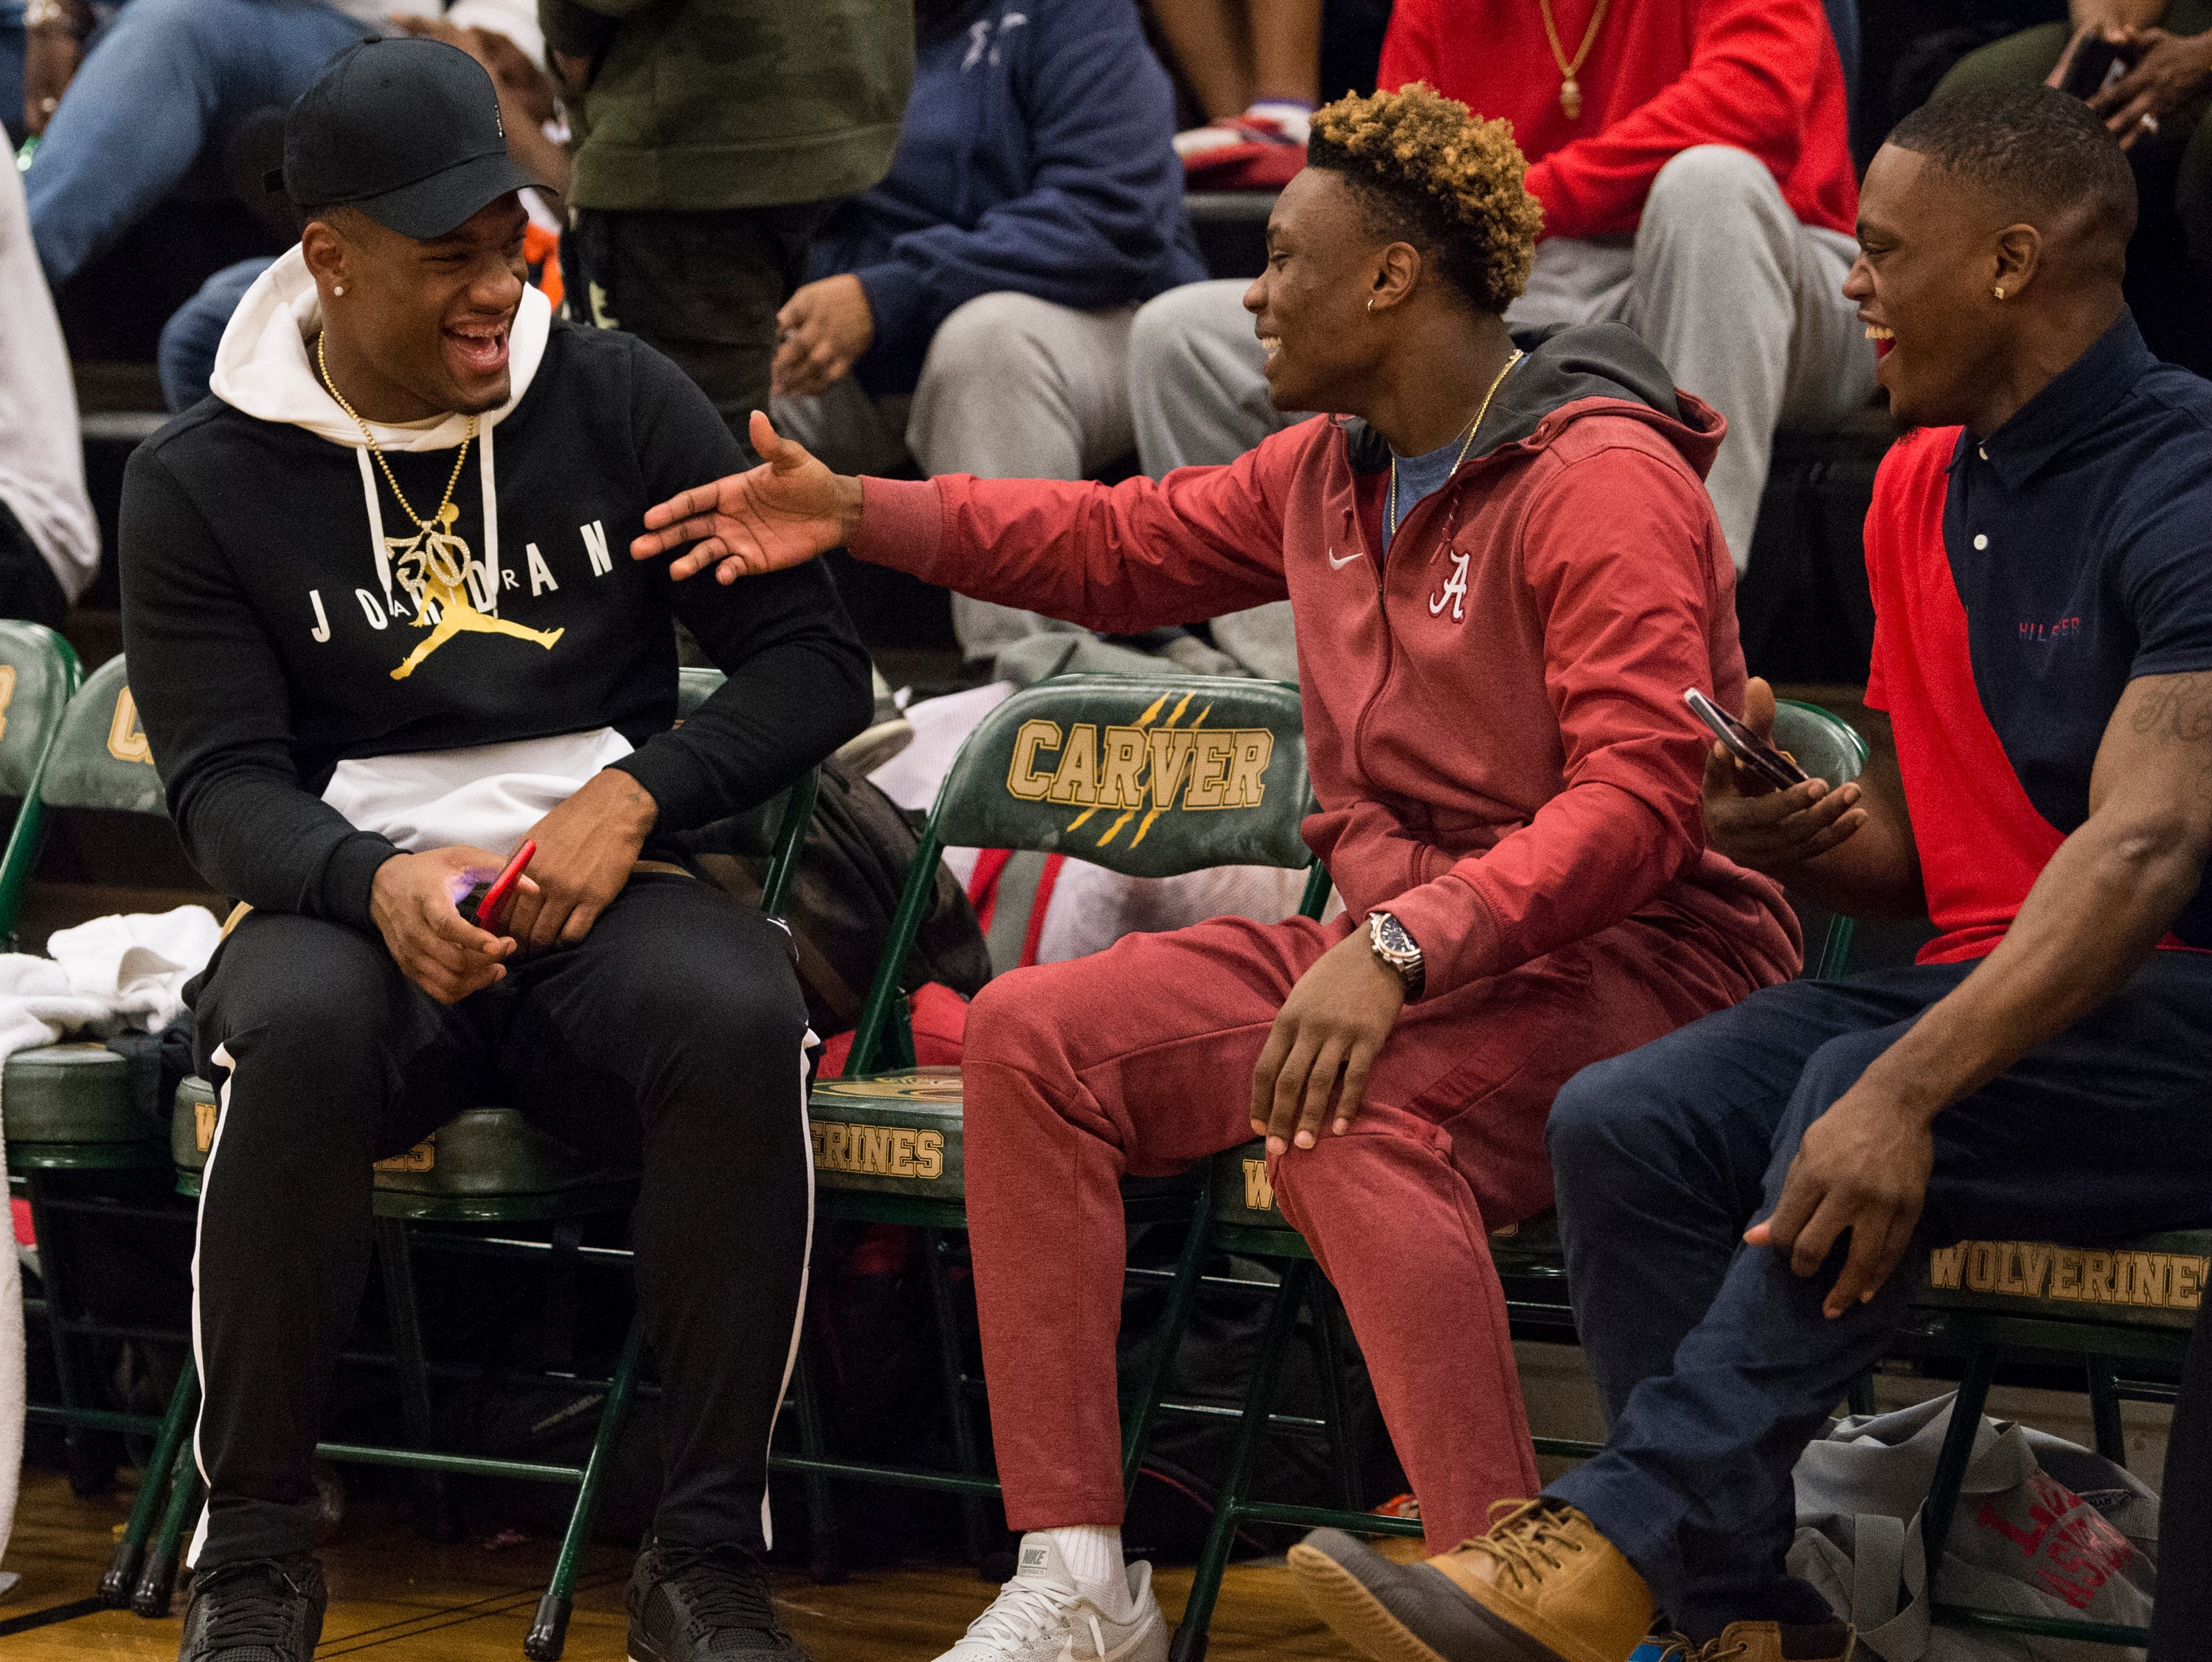 Carver grad Mack Wilson and Lee grad Henry Ruggs III both Alabama football players joke on the sideline of the Carver-Lee basketball game at Carver High School in Montgomery, Ala., on Friday, Jan. 25, 2019. Lee defeated Carver 57-50.